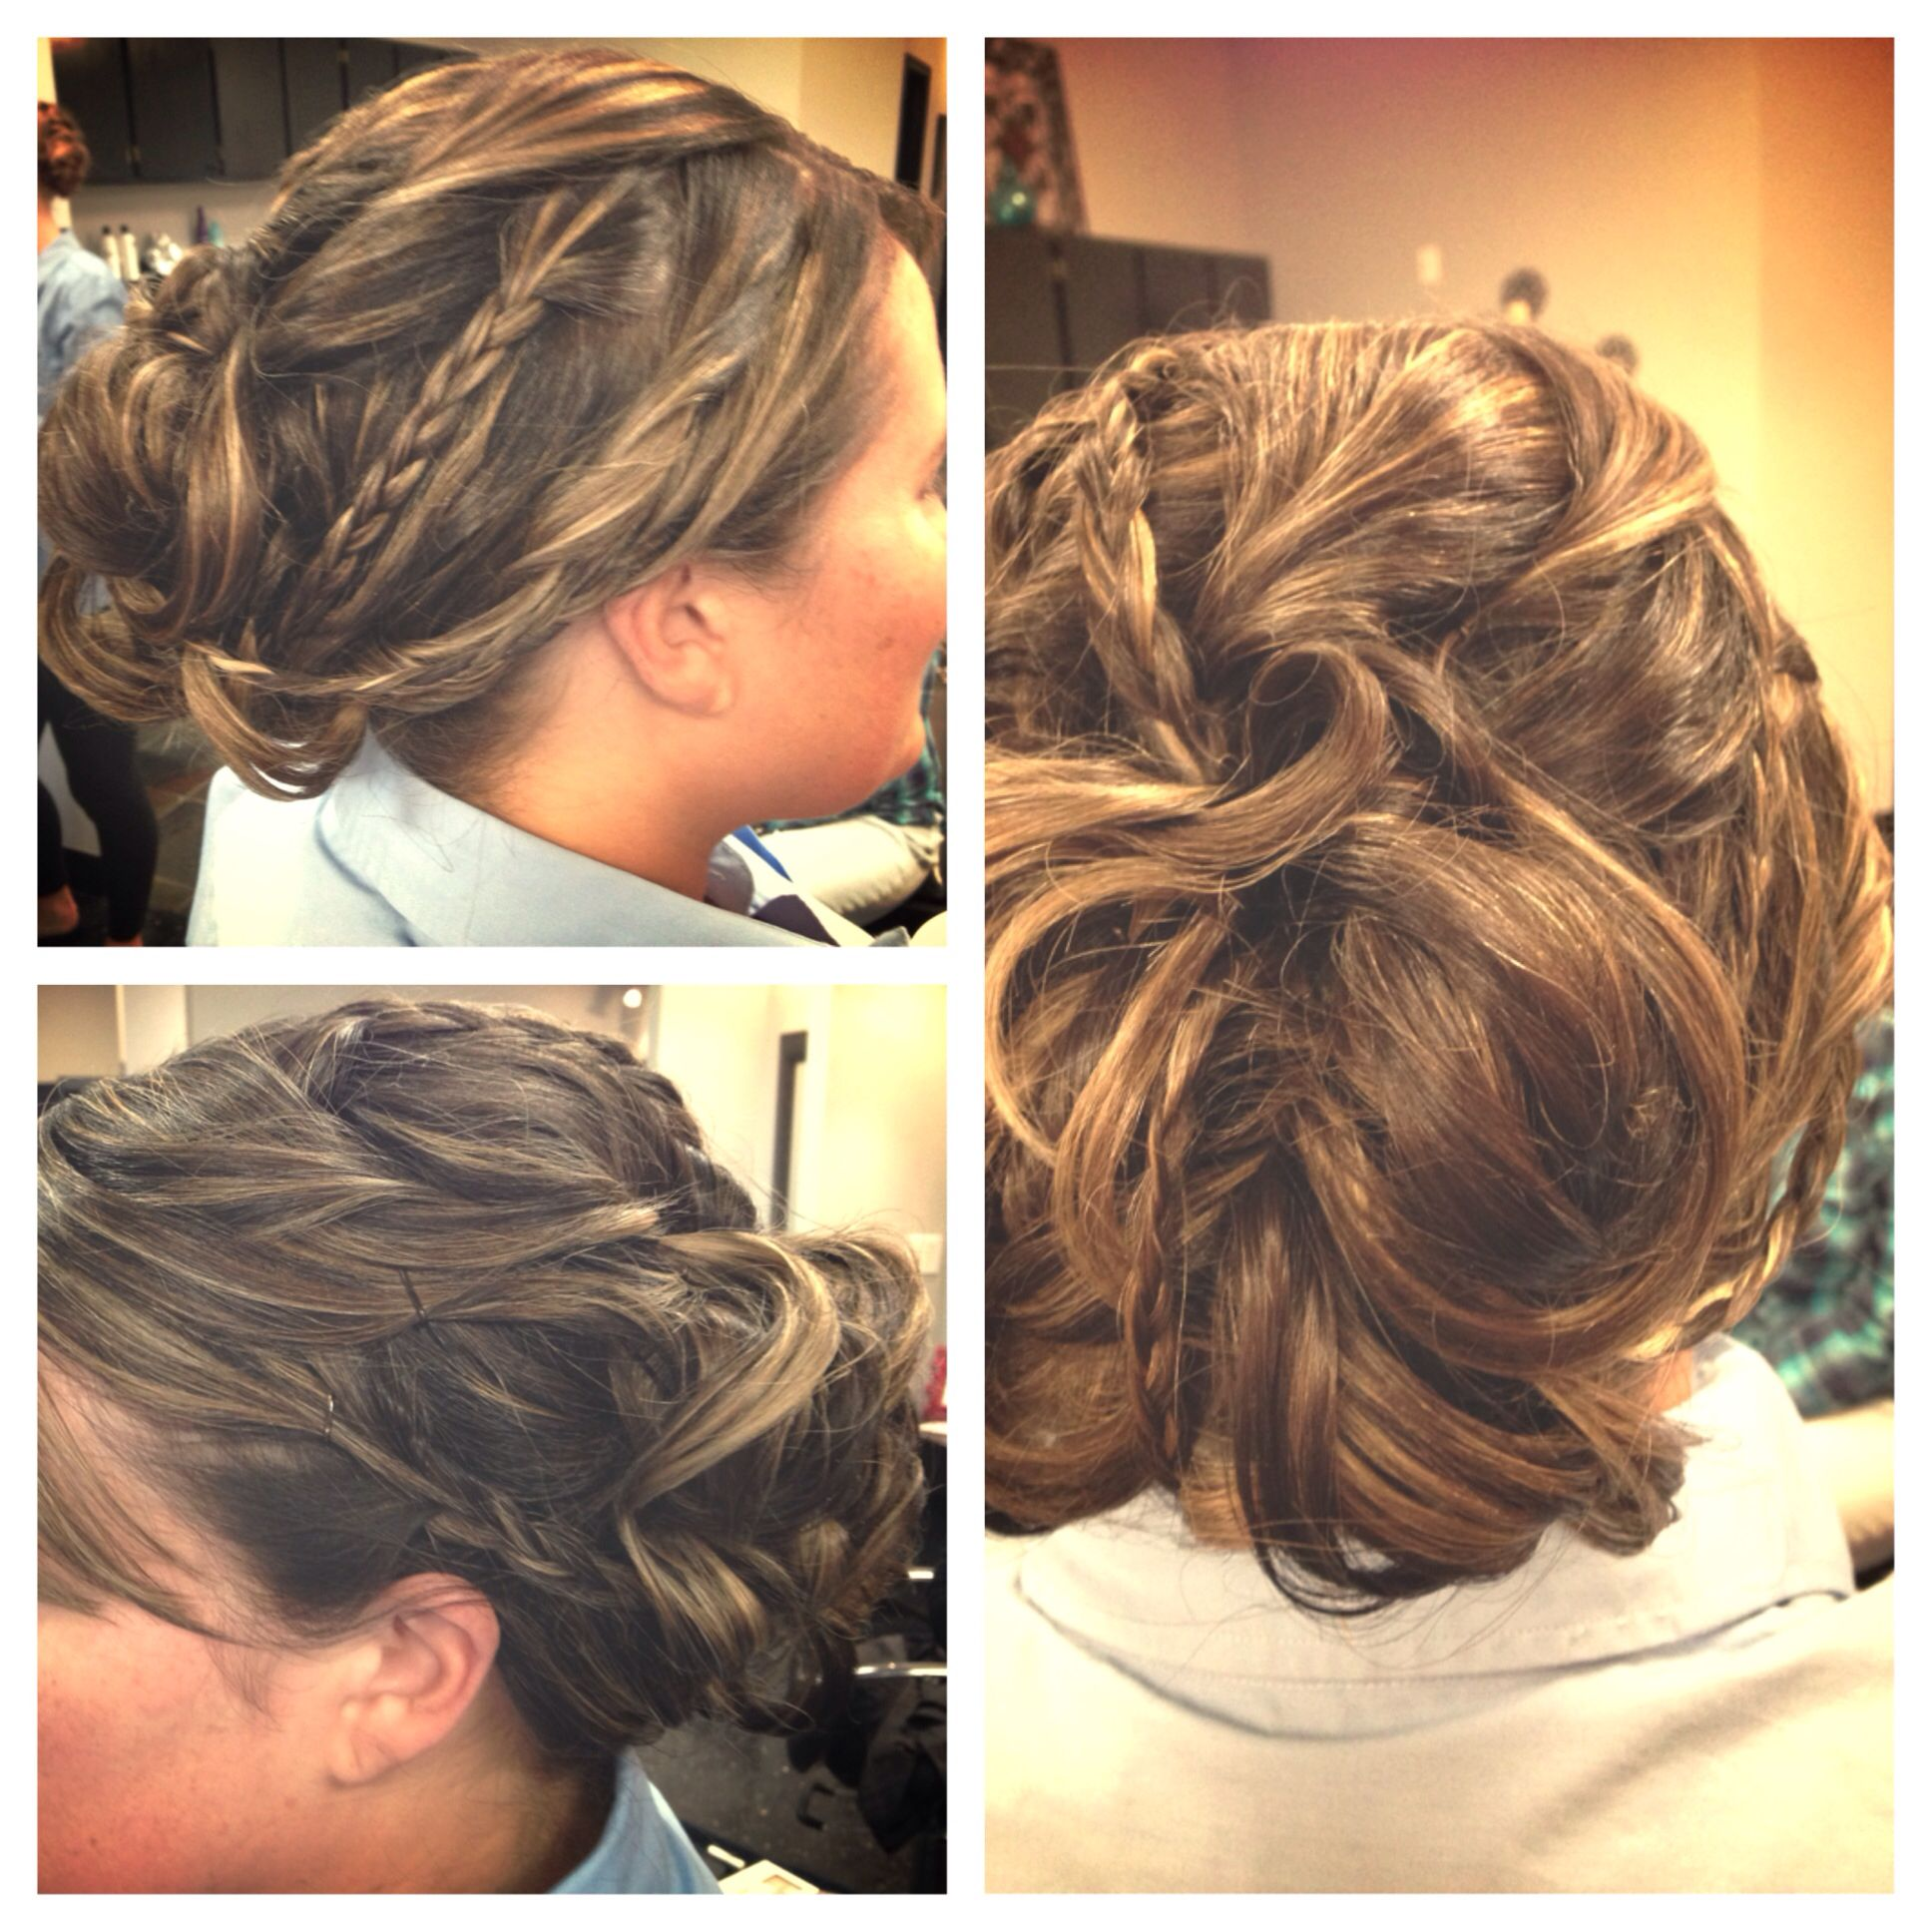 Braided updo for more info on formal styles check out our website